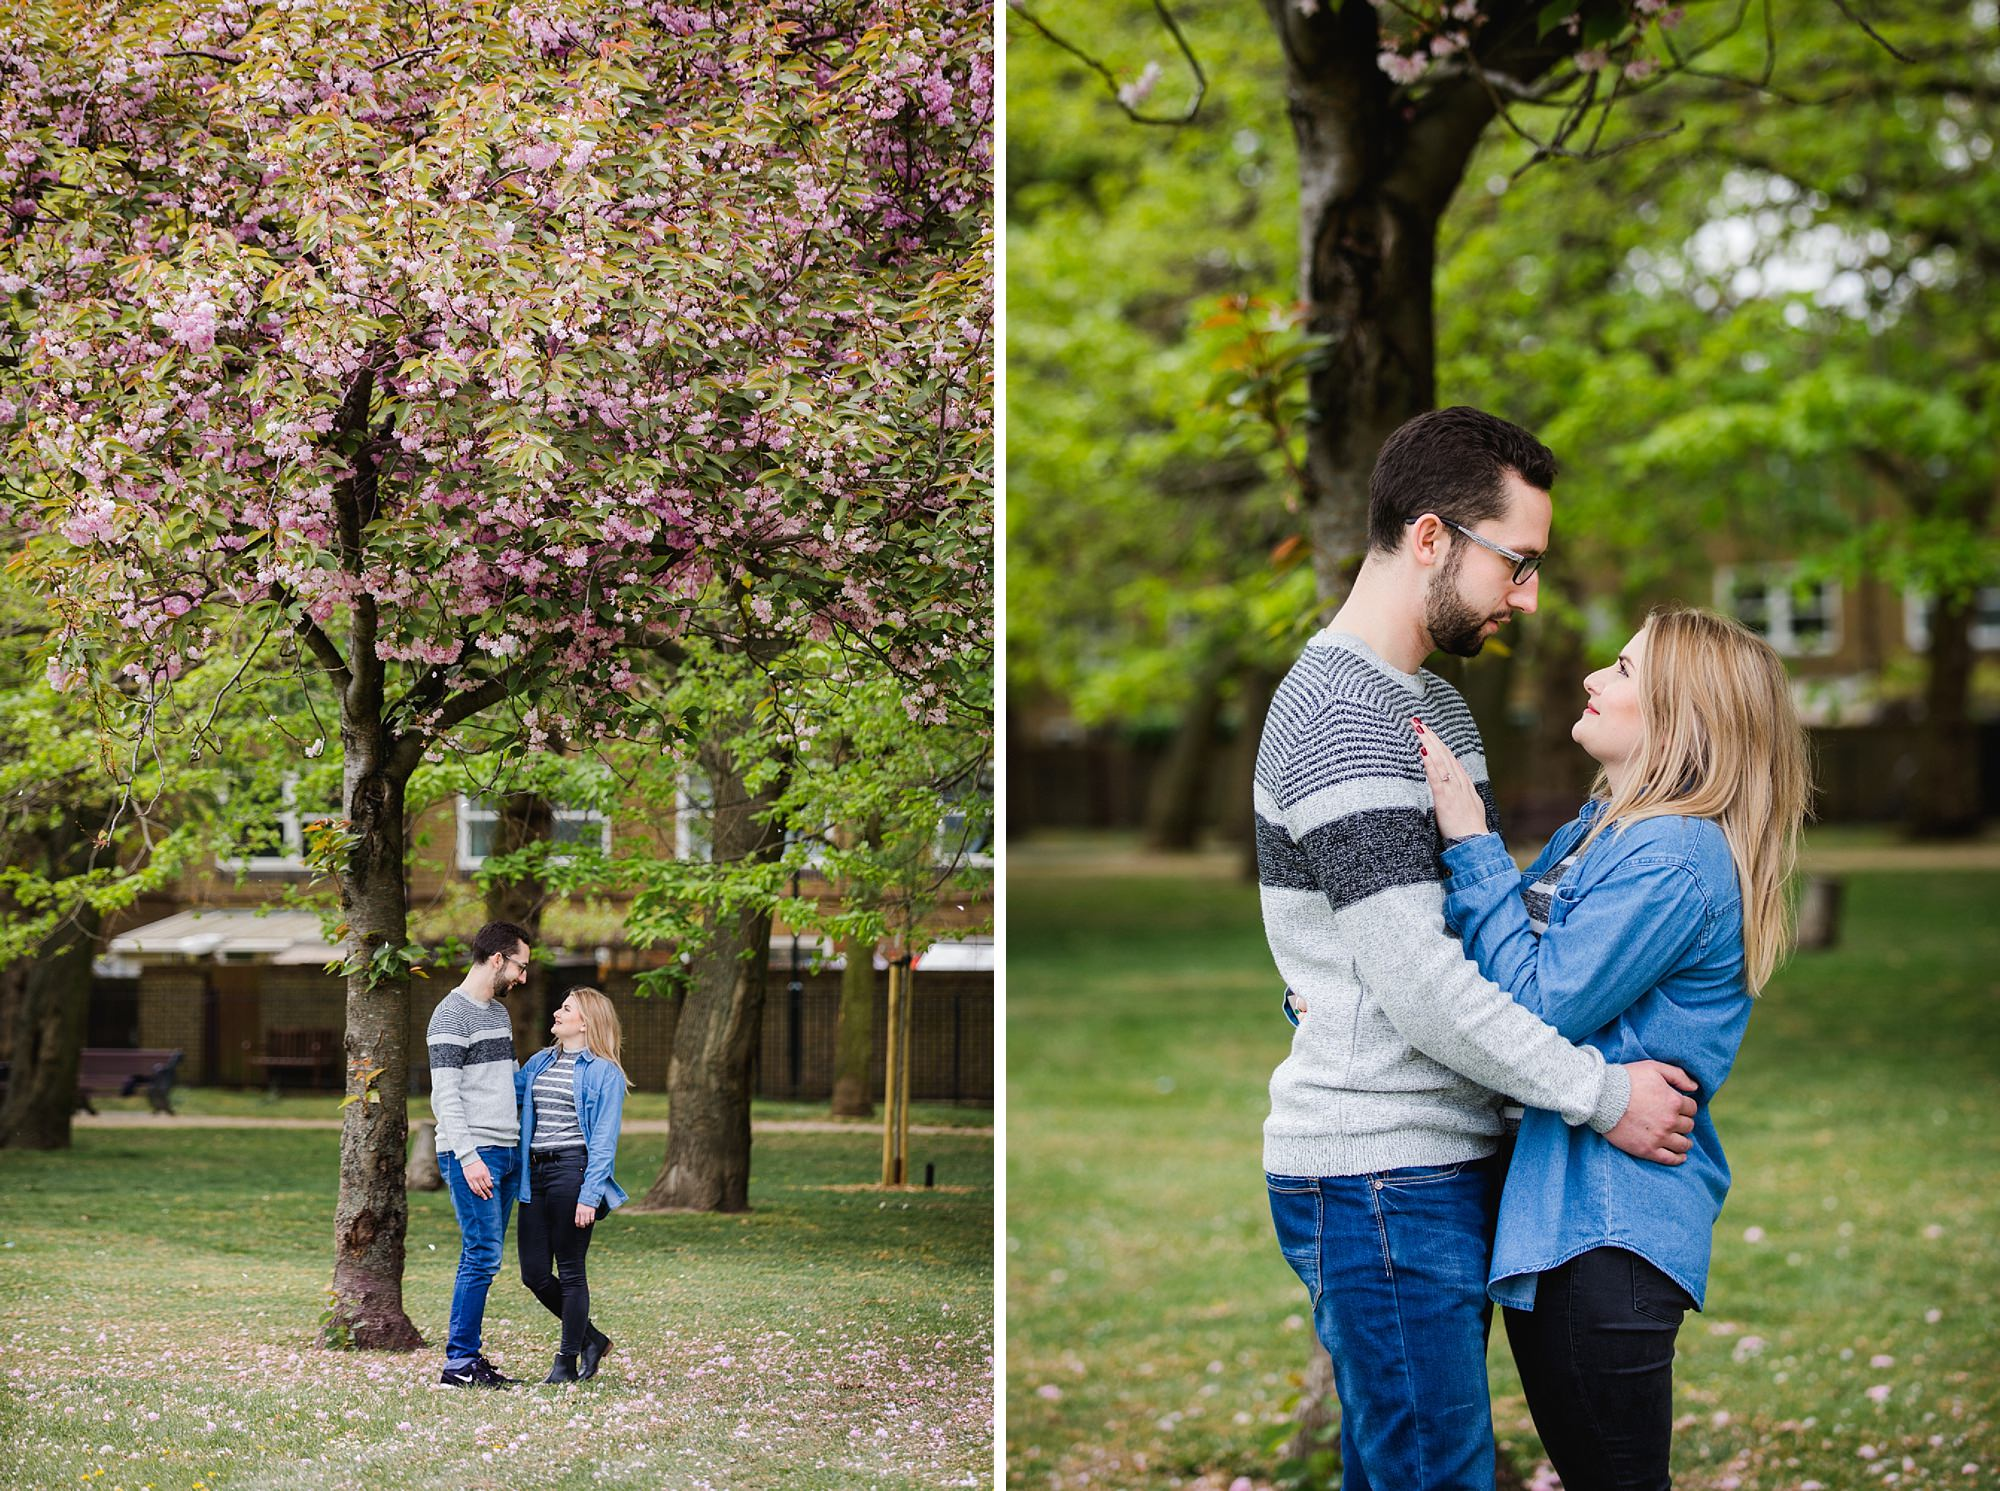 Victoria park engagement photography in hackney